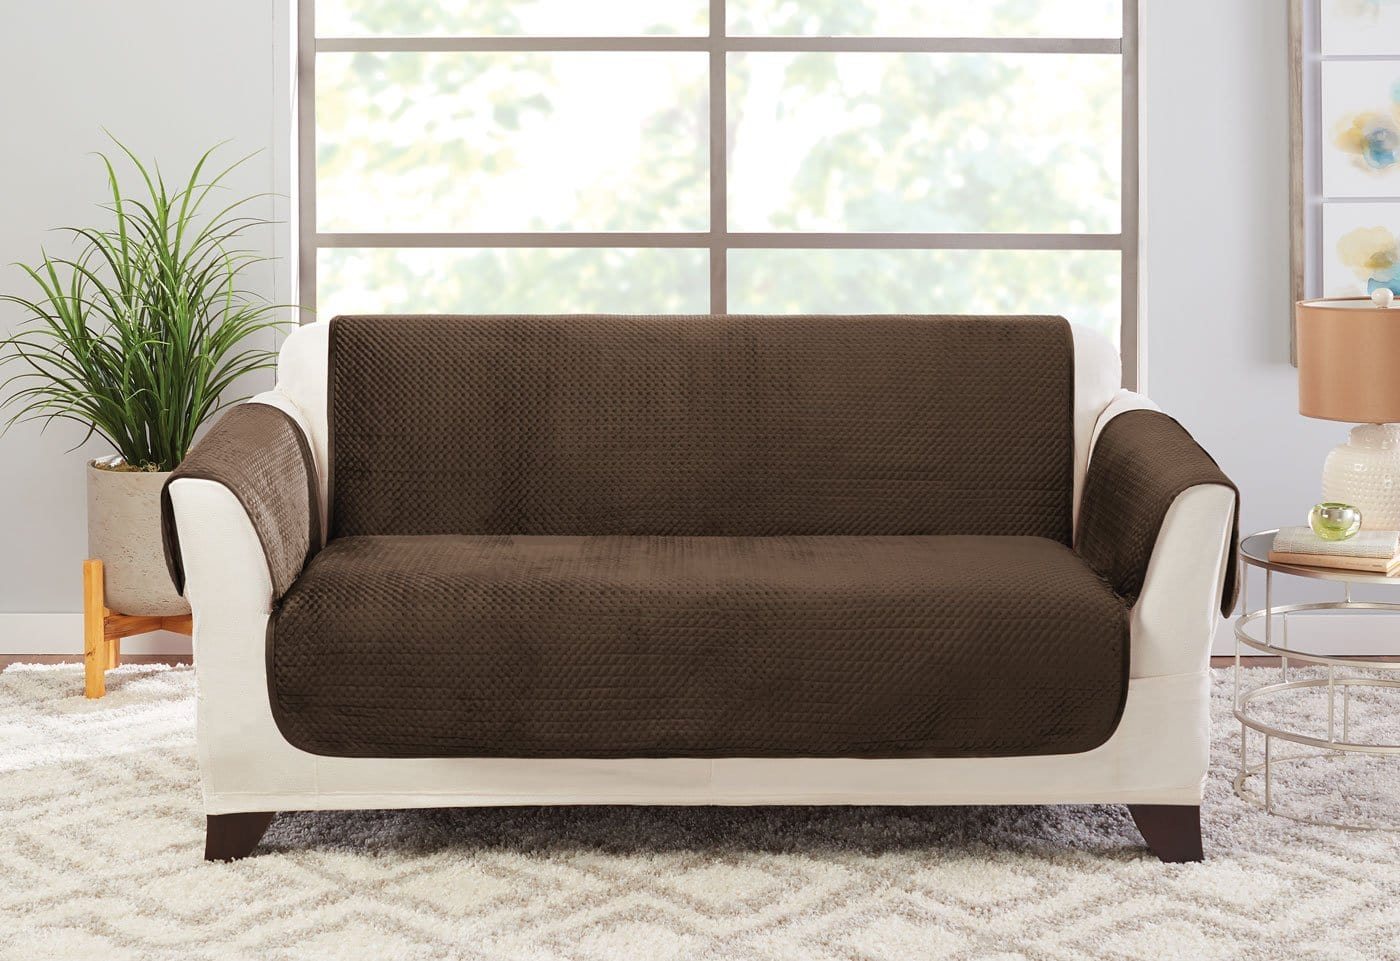 Elegant Pick Stitch Loveseat Furniture Cover 100% Polyester Pet Furniture Cover Machine Washable - Loveseat / Smokey Brown